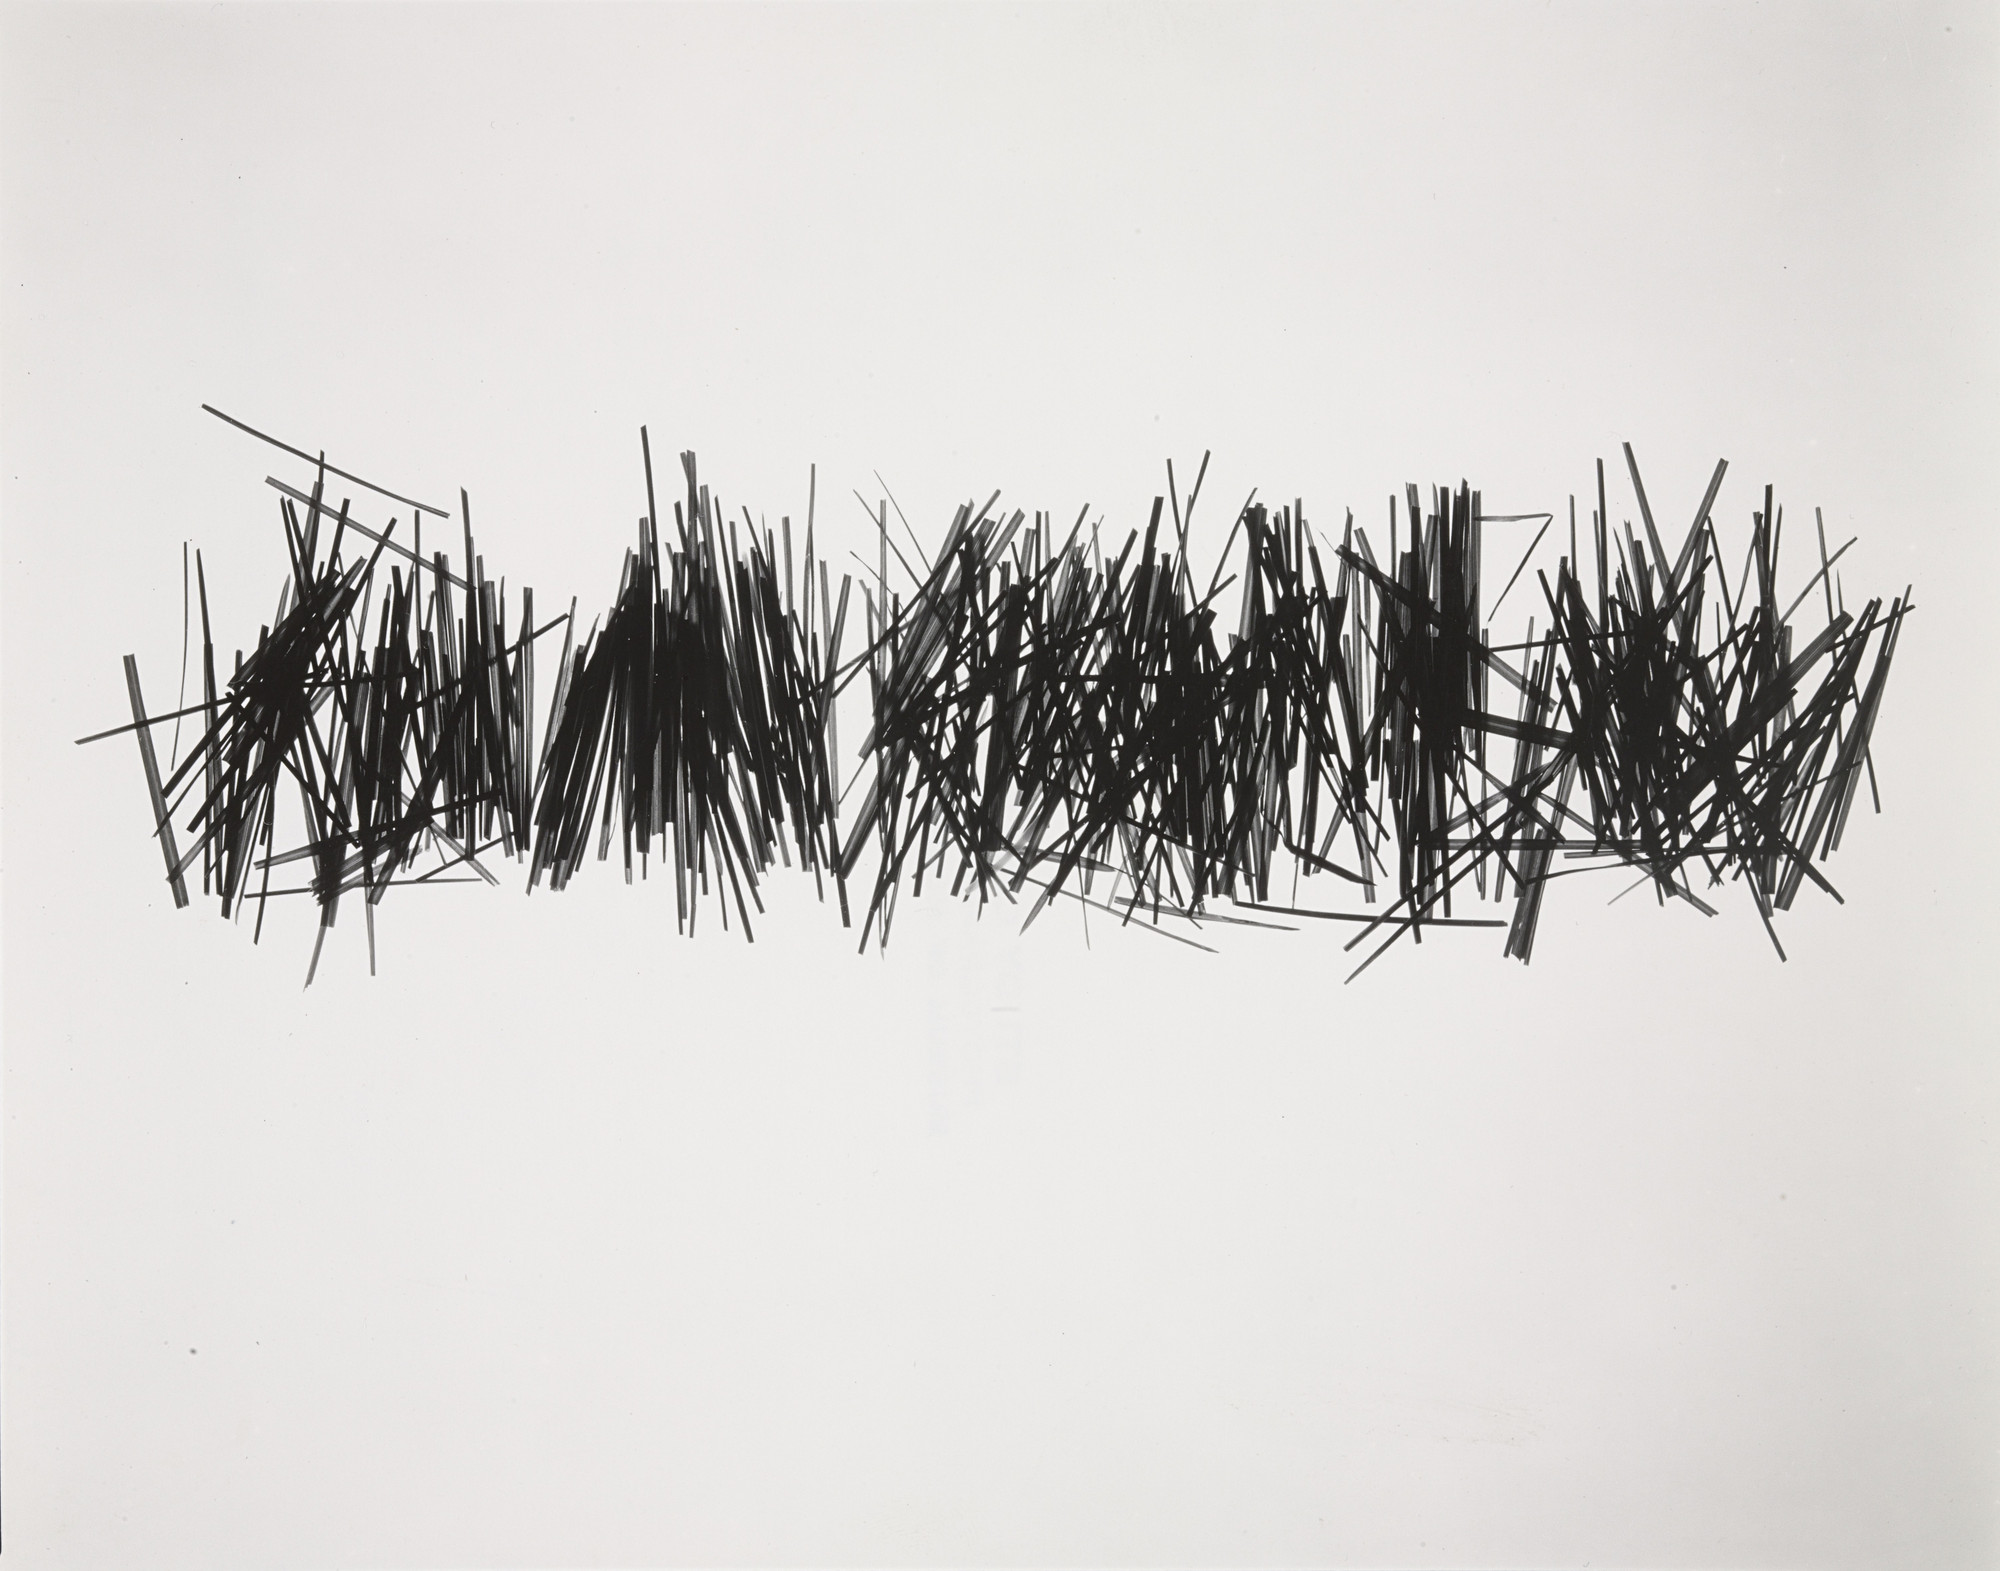 Harry Callahan. Untitled. c. 1950